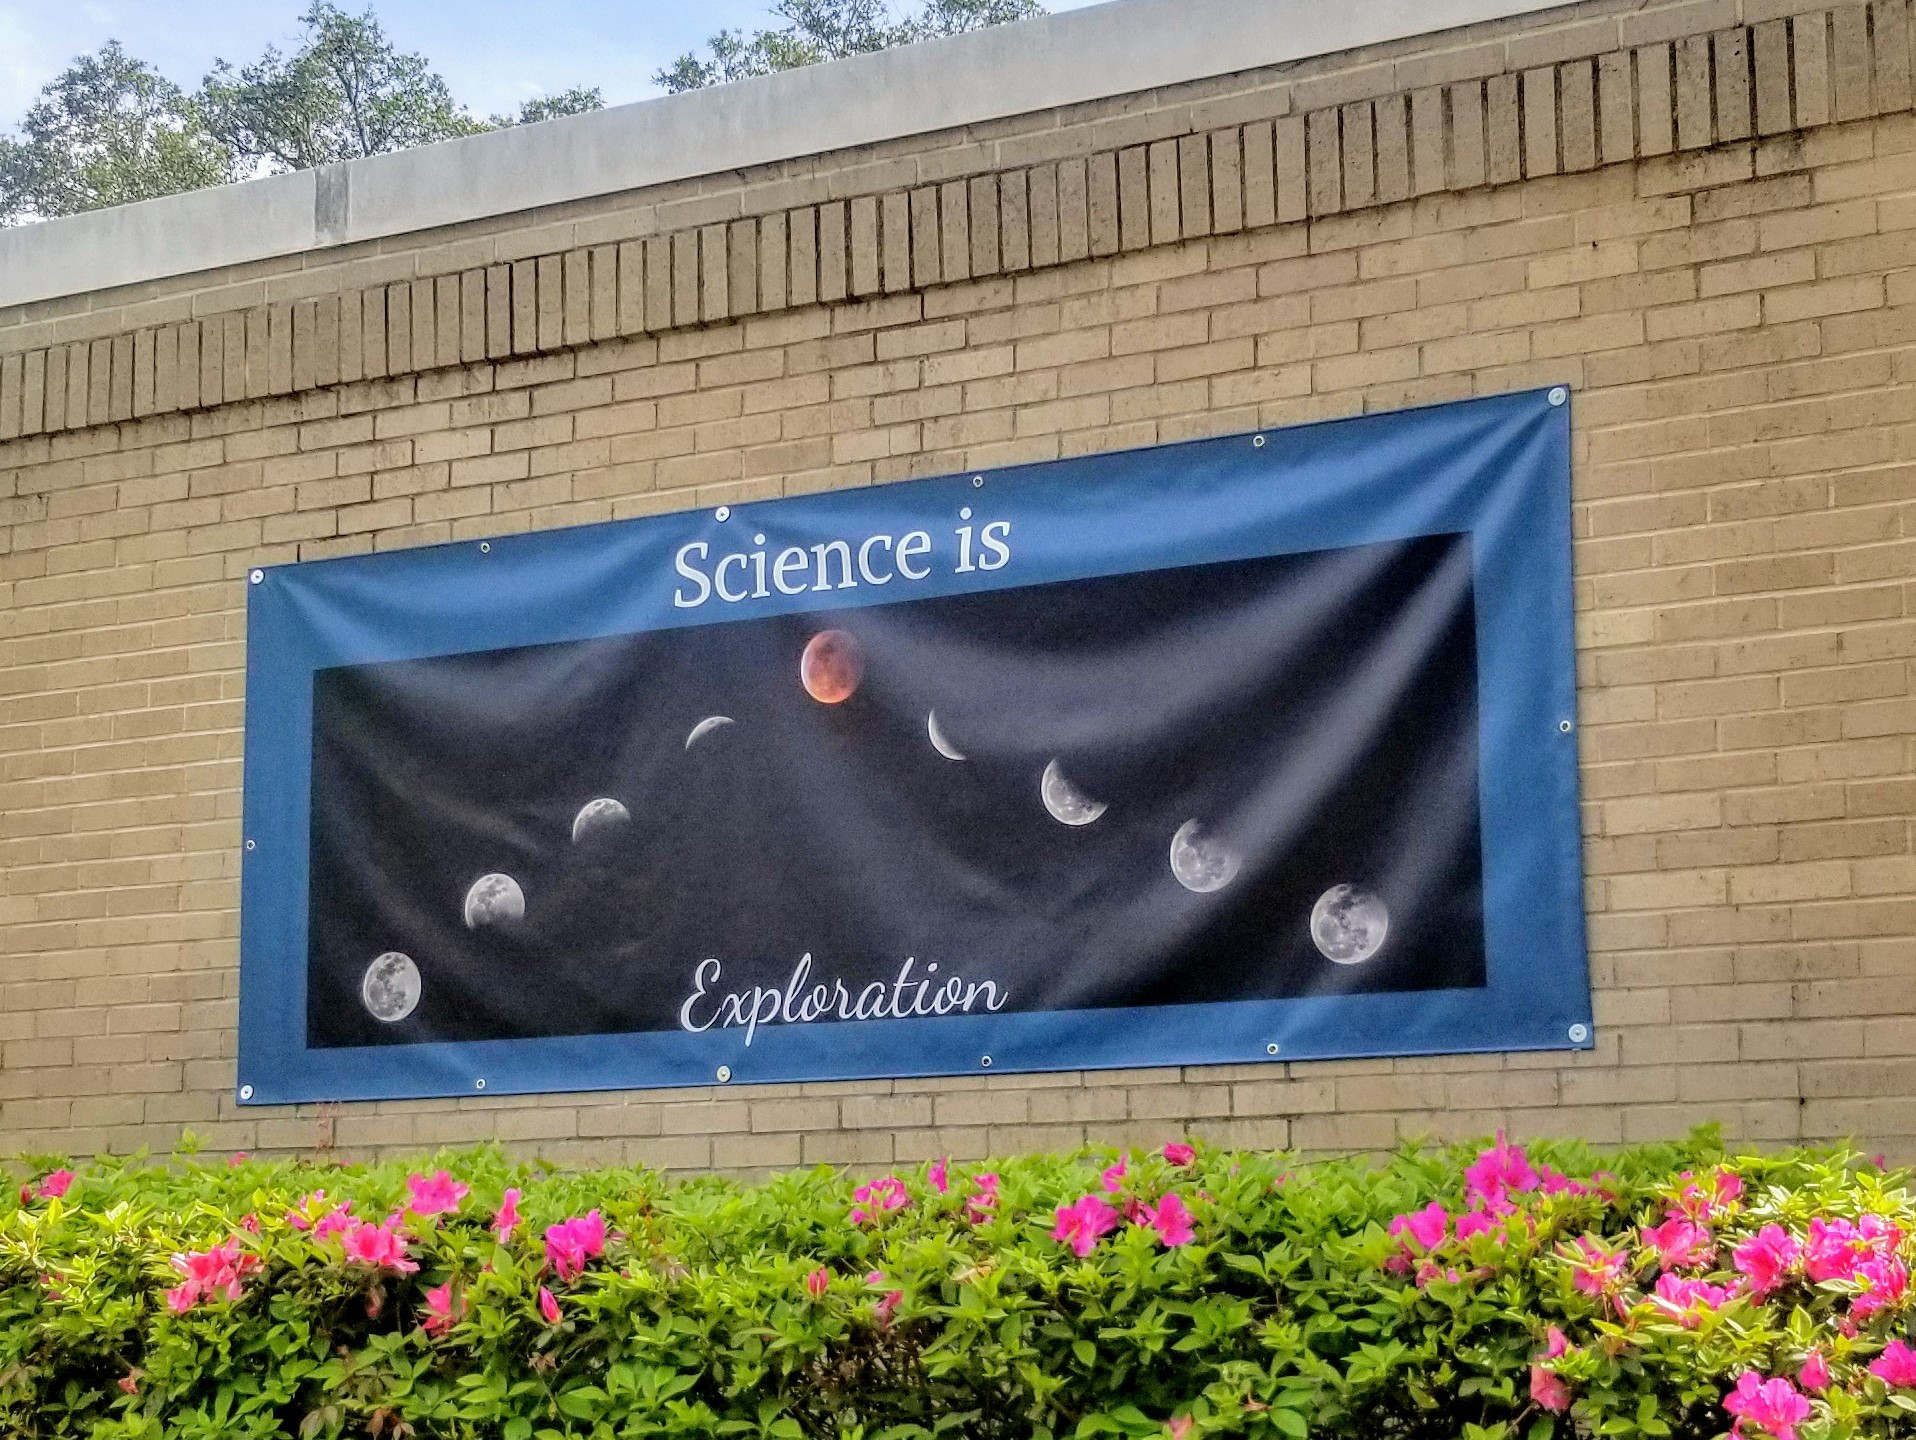 Science is exploration.